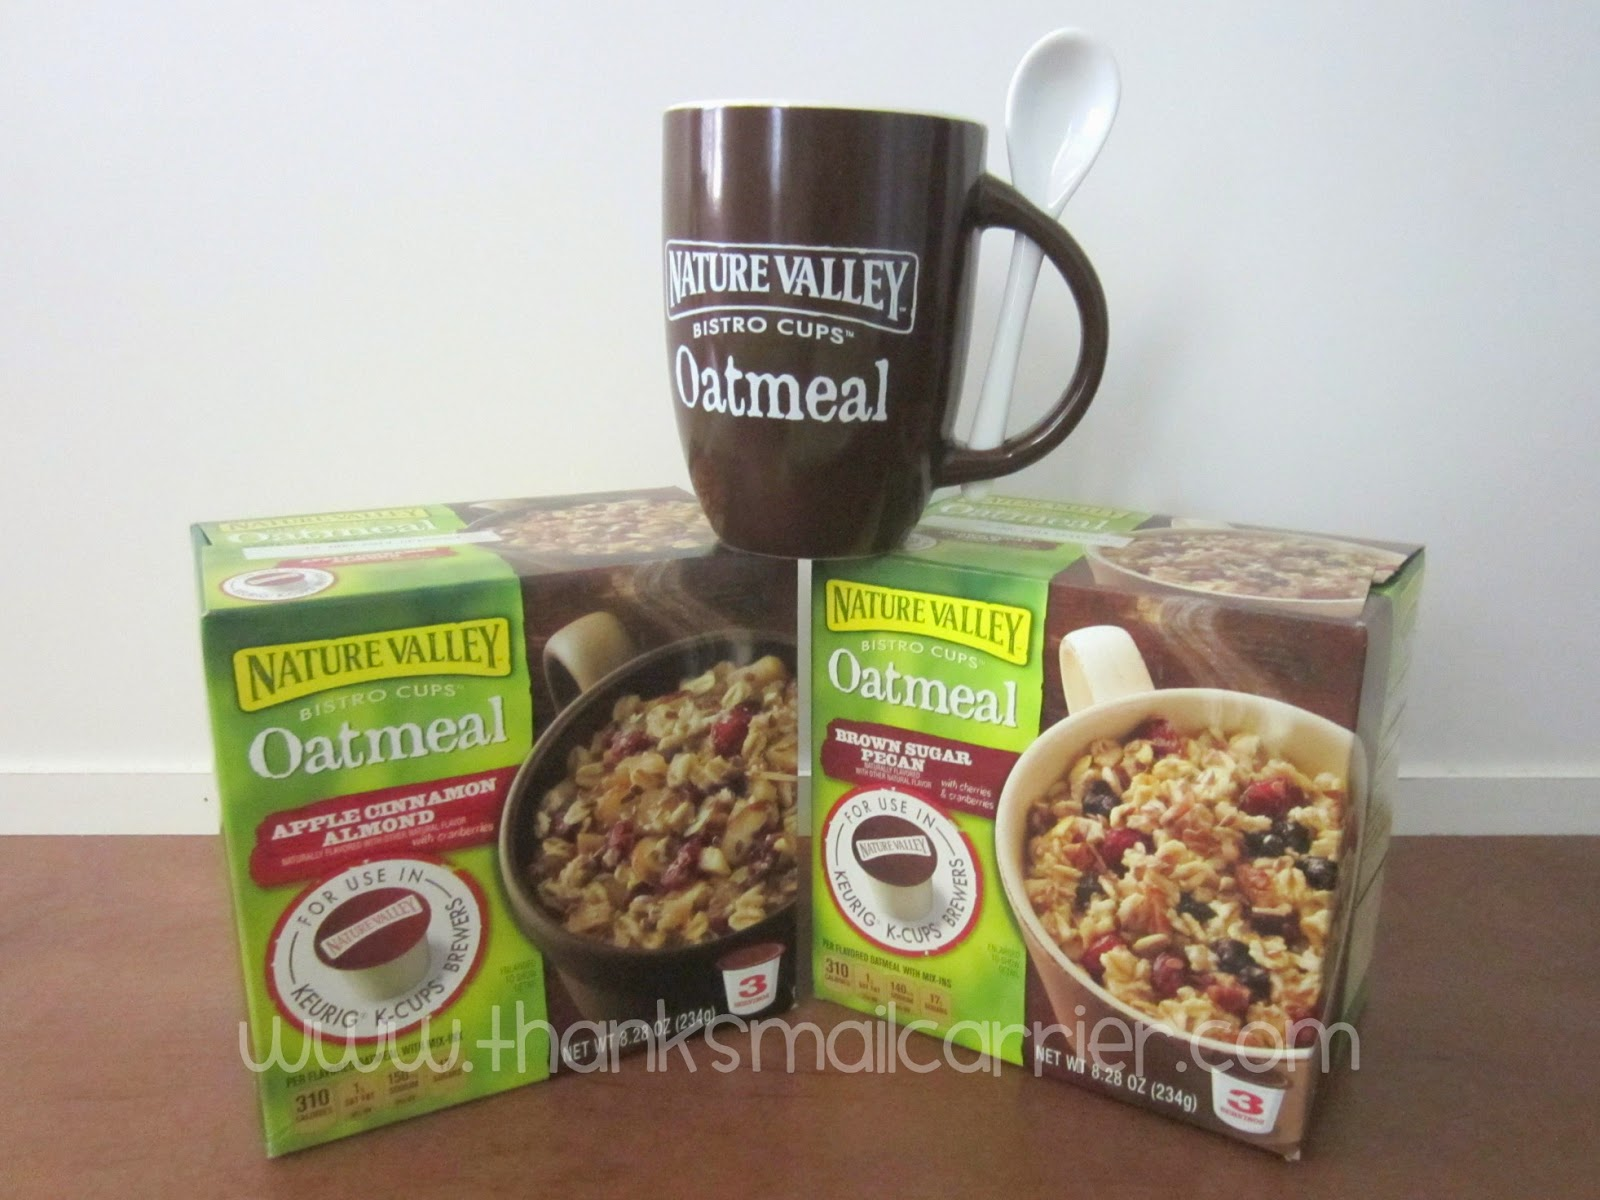 Nature Valley Bistro Cups